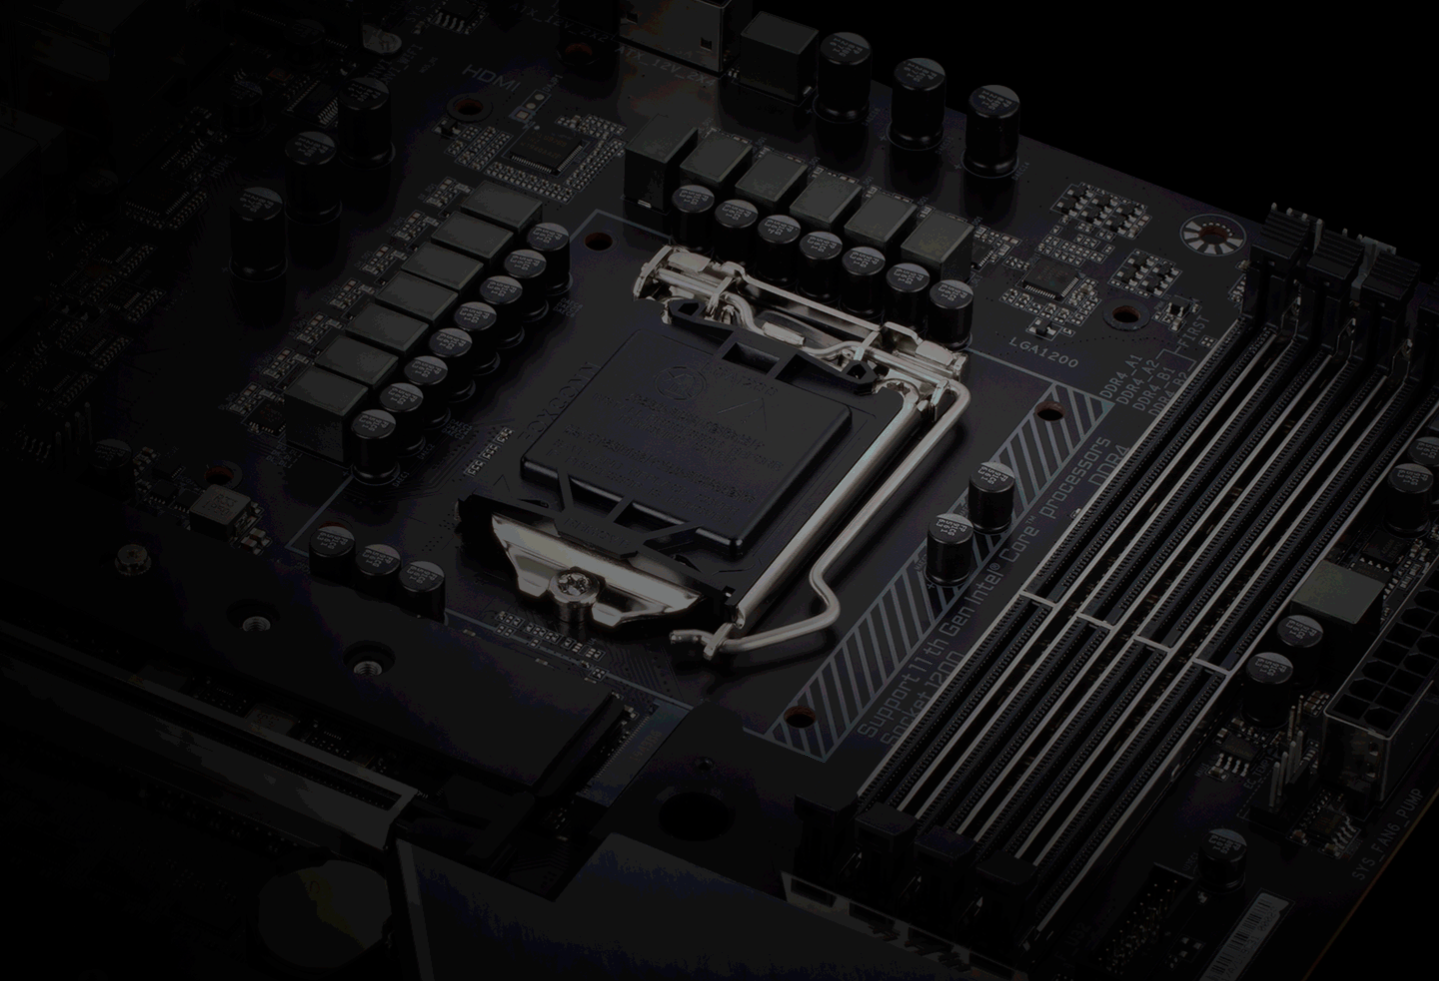 Z590 motherboards feature PCIe Gen 4.0 compatibility only with 11th Generation Intel Rocket Lake Core i9, Core i7, and Core i5 CPUs